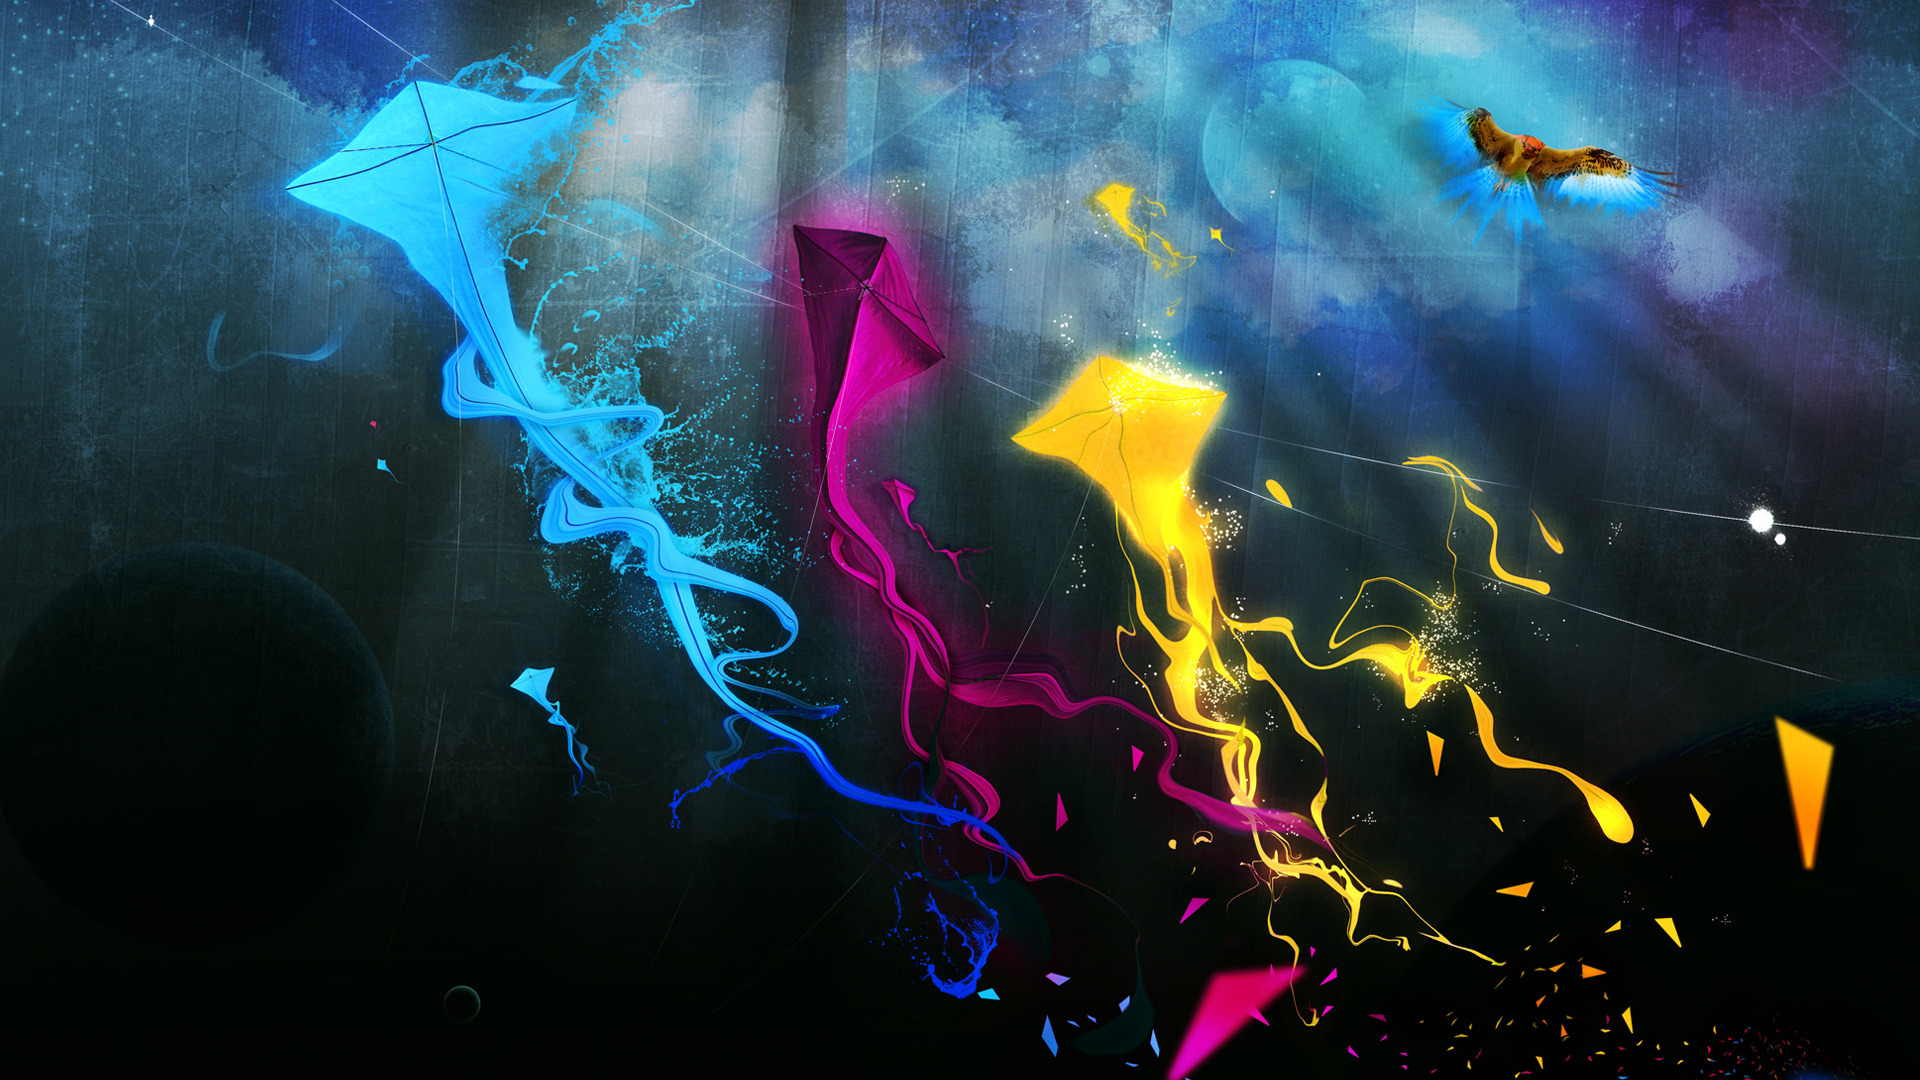 Colorful-Kites-HD-1920x1080-See-more-on-Classy-Bro-wallpaper-wp3604201